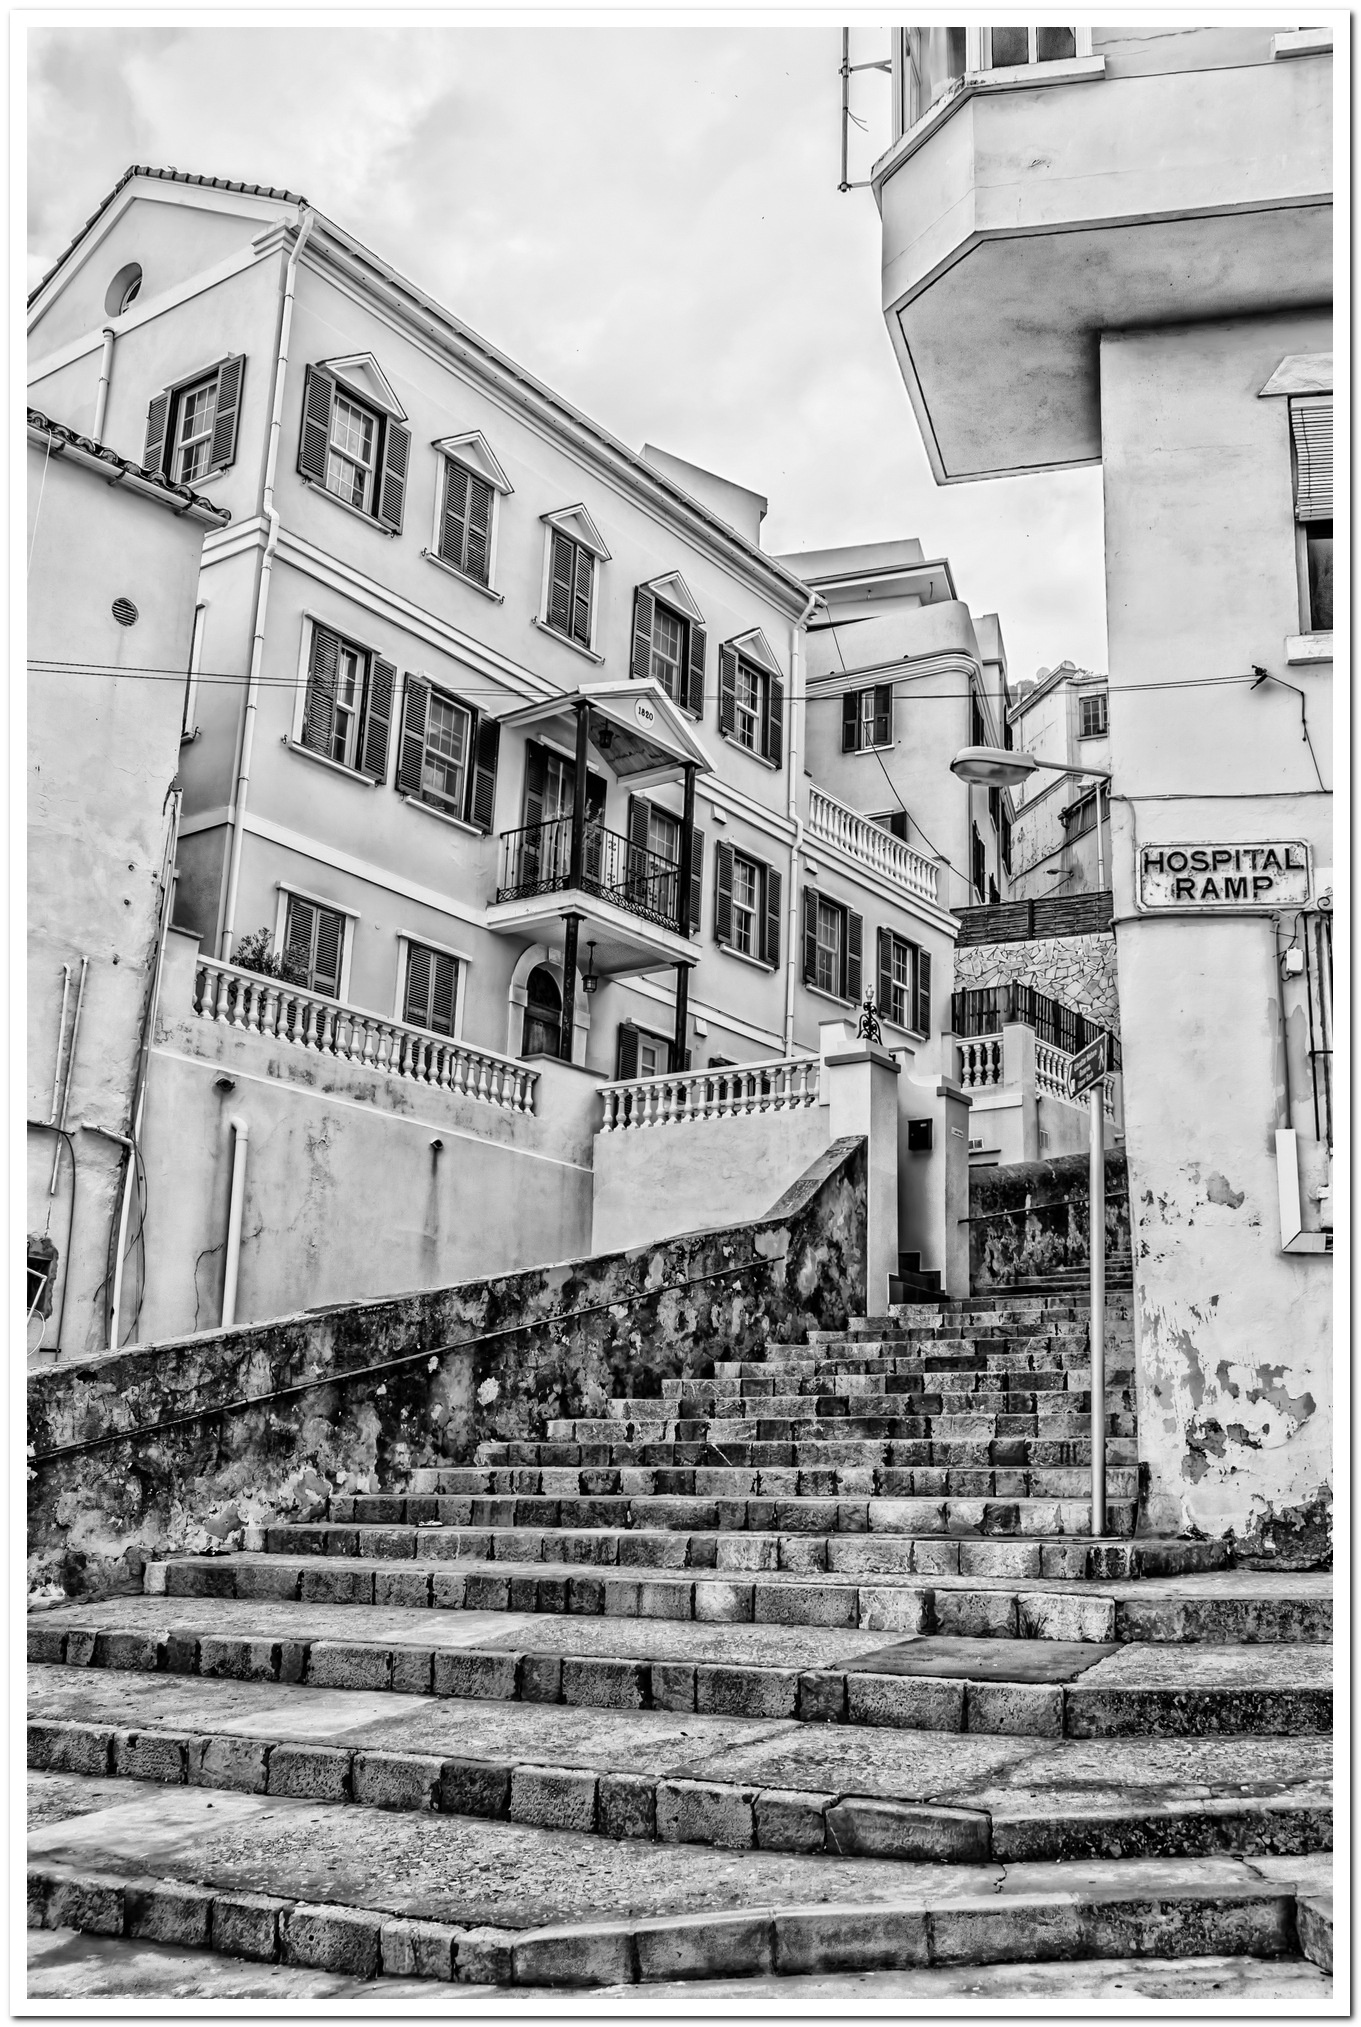 Mansion on Steps by AlanG